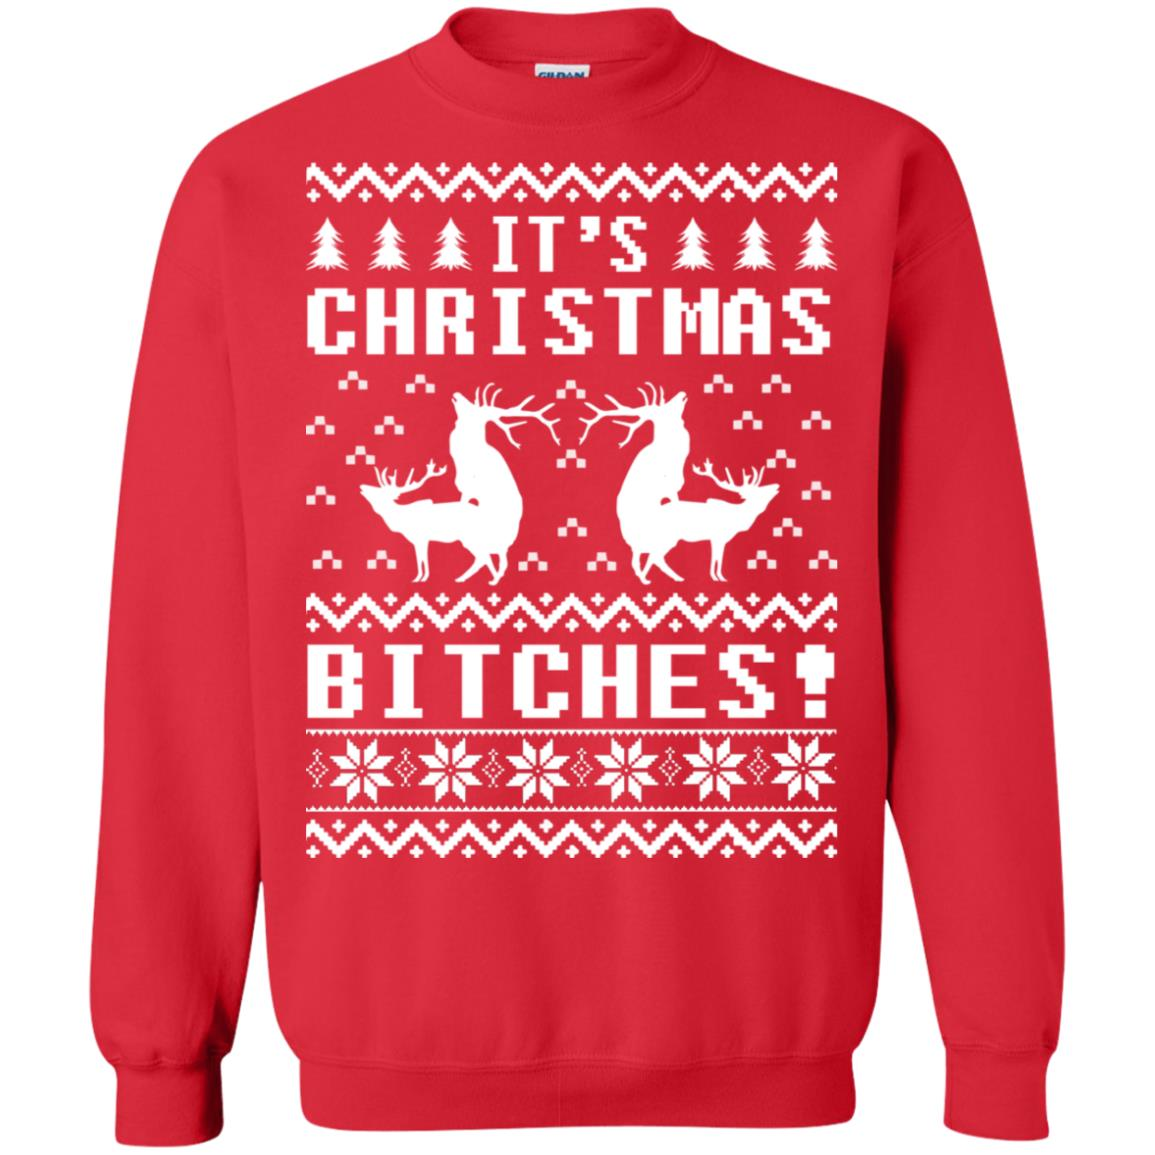 3d516c01b Humping Reindeer It's Christmas Bitches Ugly Sweater, long sleeve ...